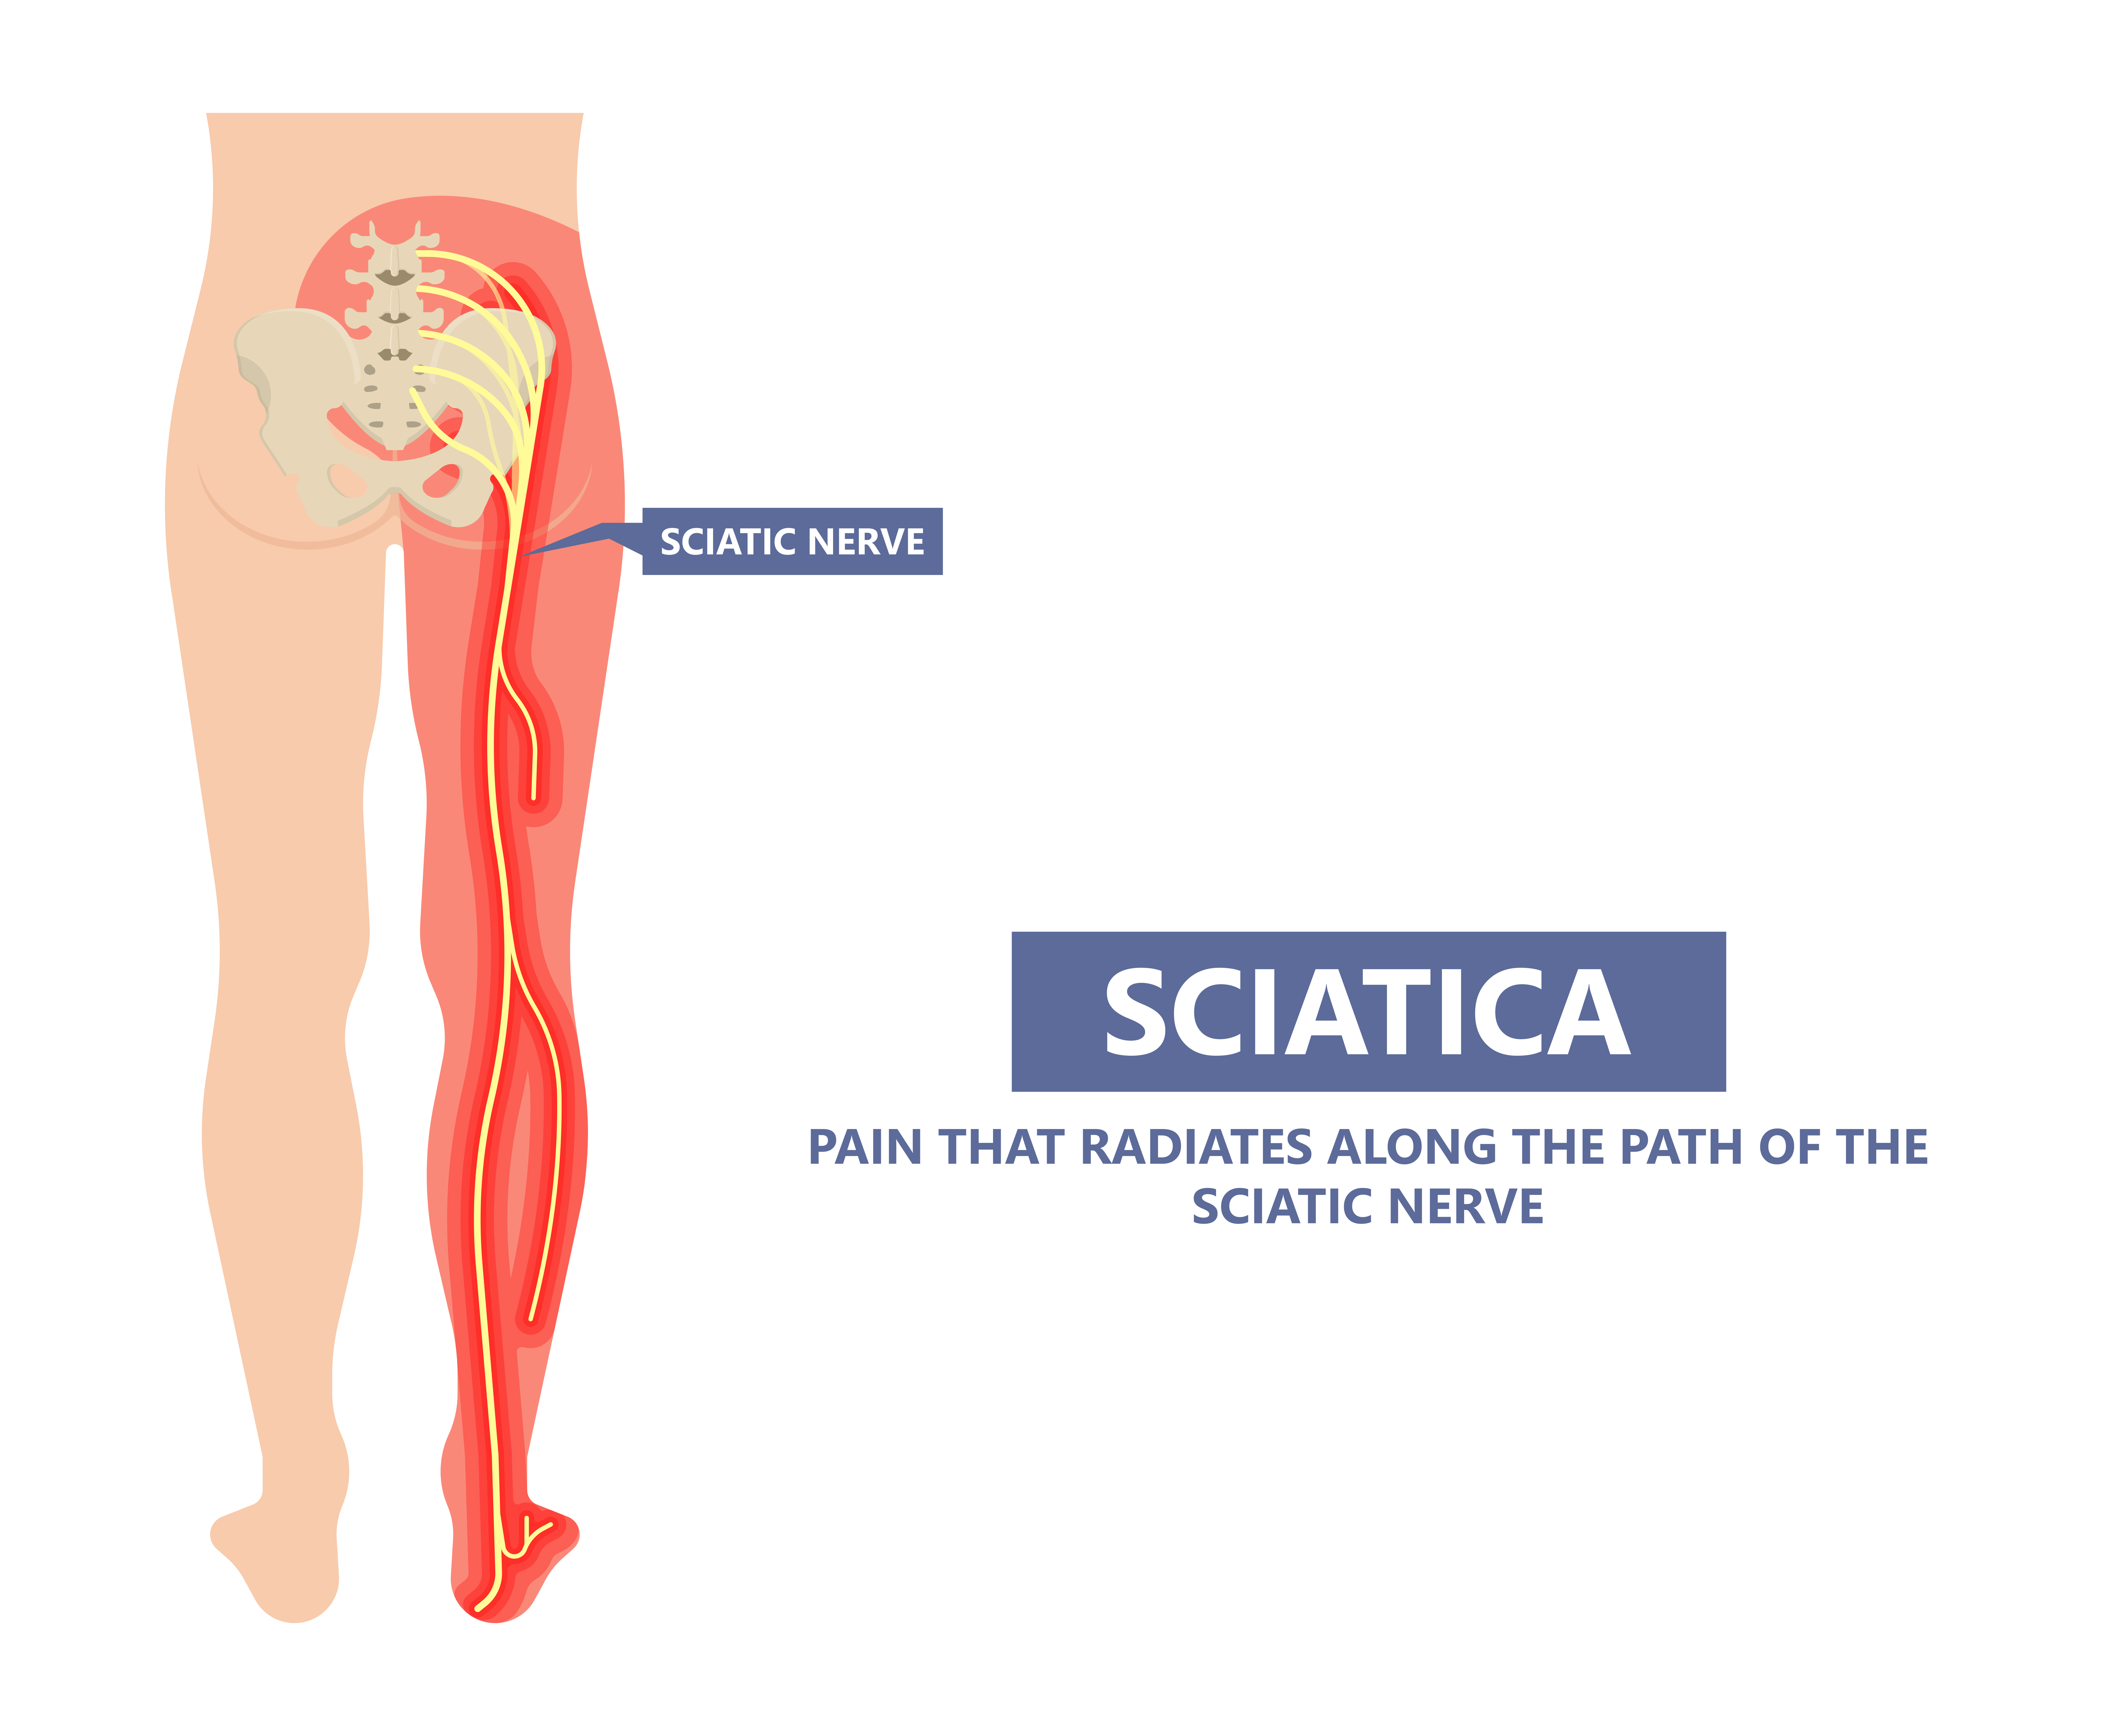 What is Sciatica? And how can I help alleviate the pain?